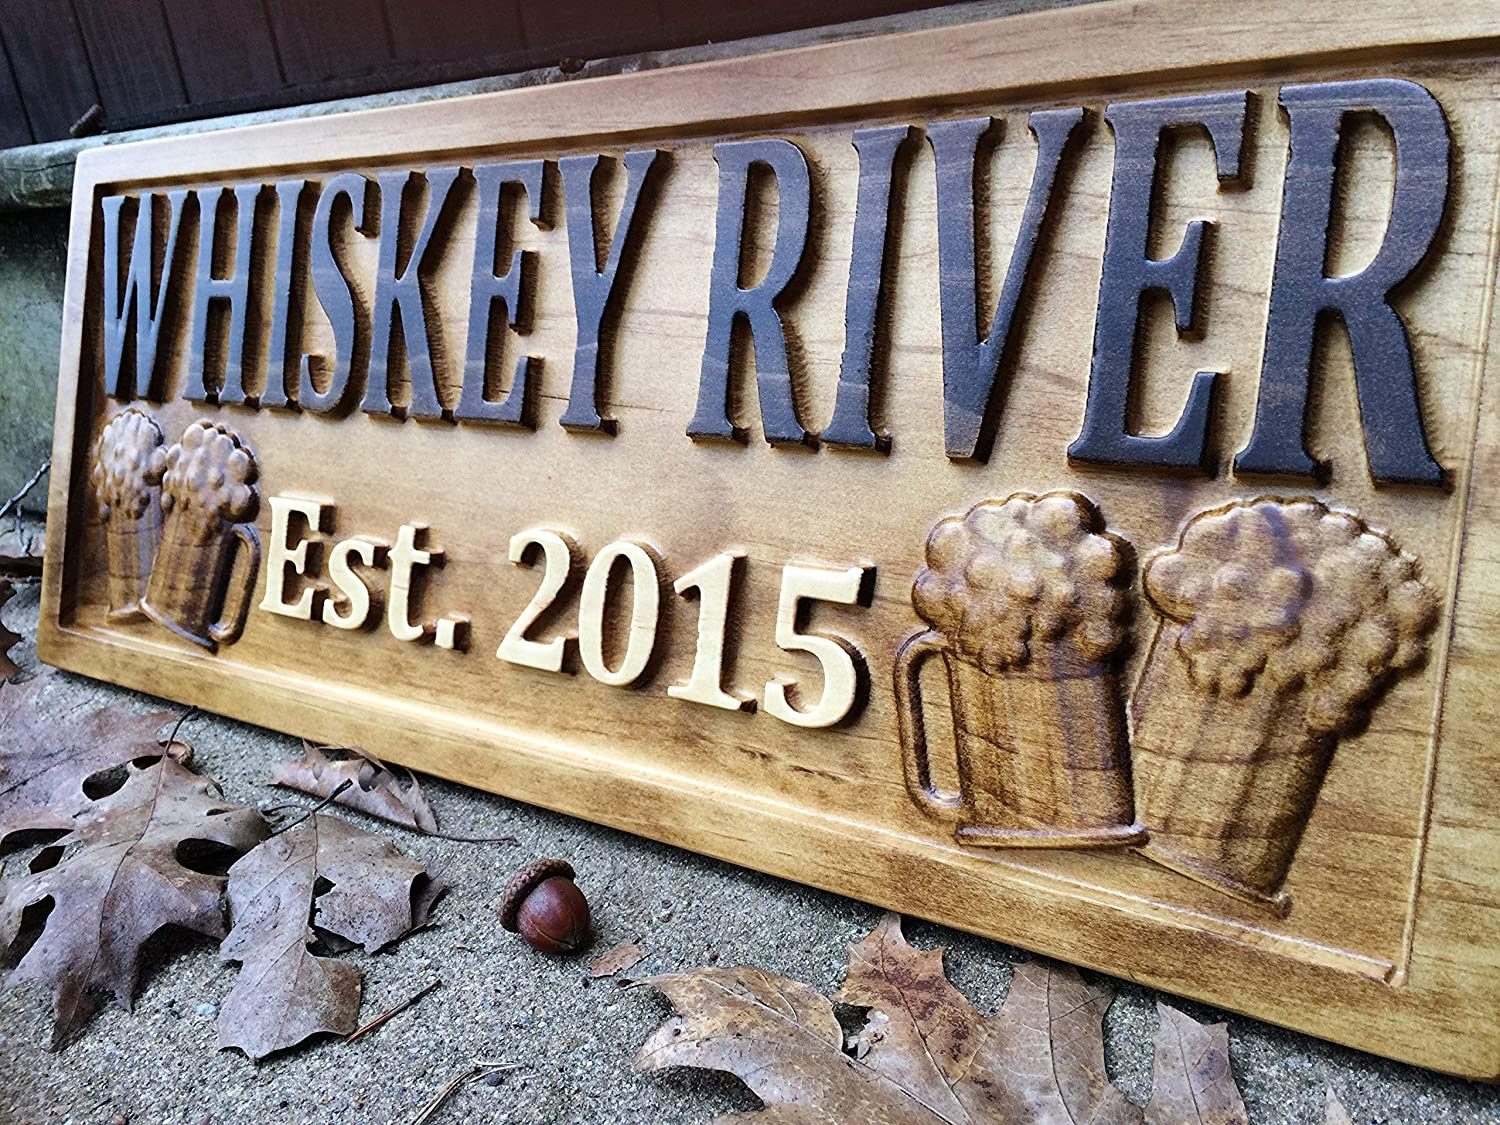 Personalized Bar Sign Custom Carved Wood Sign Personalized Wood Sign Groomsmen Gift Cabin Sign Man Cave Sign Pub Rustic Home Decor Housewarming Gift Wine Cellar Beer Basement Bar Decor